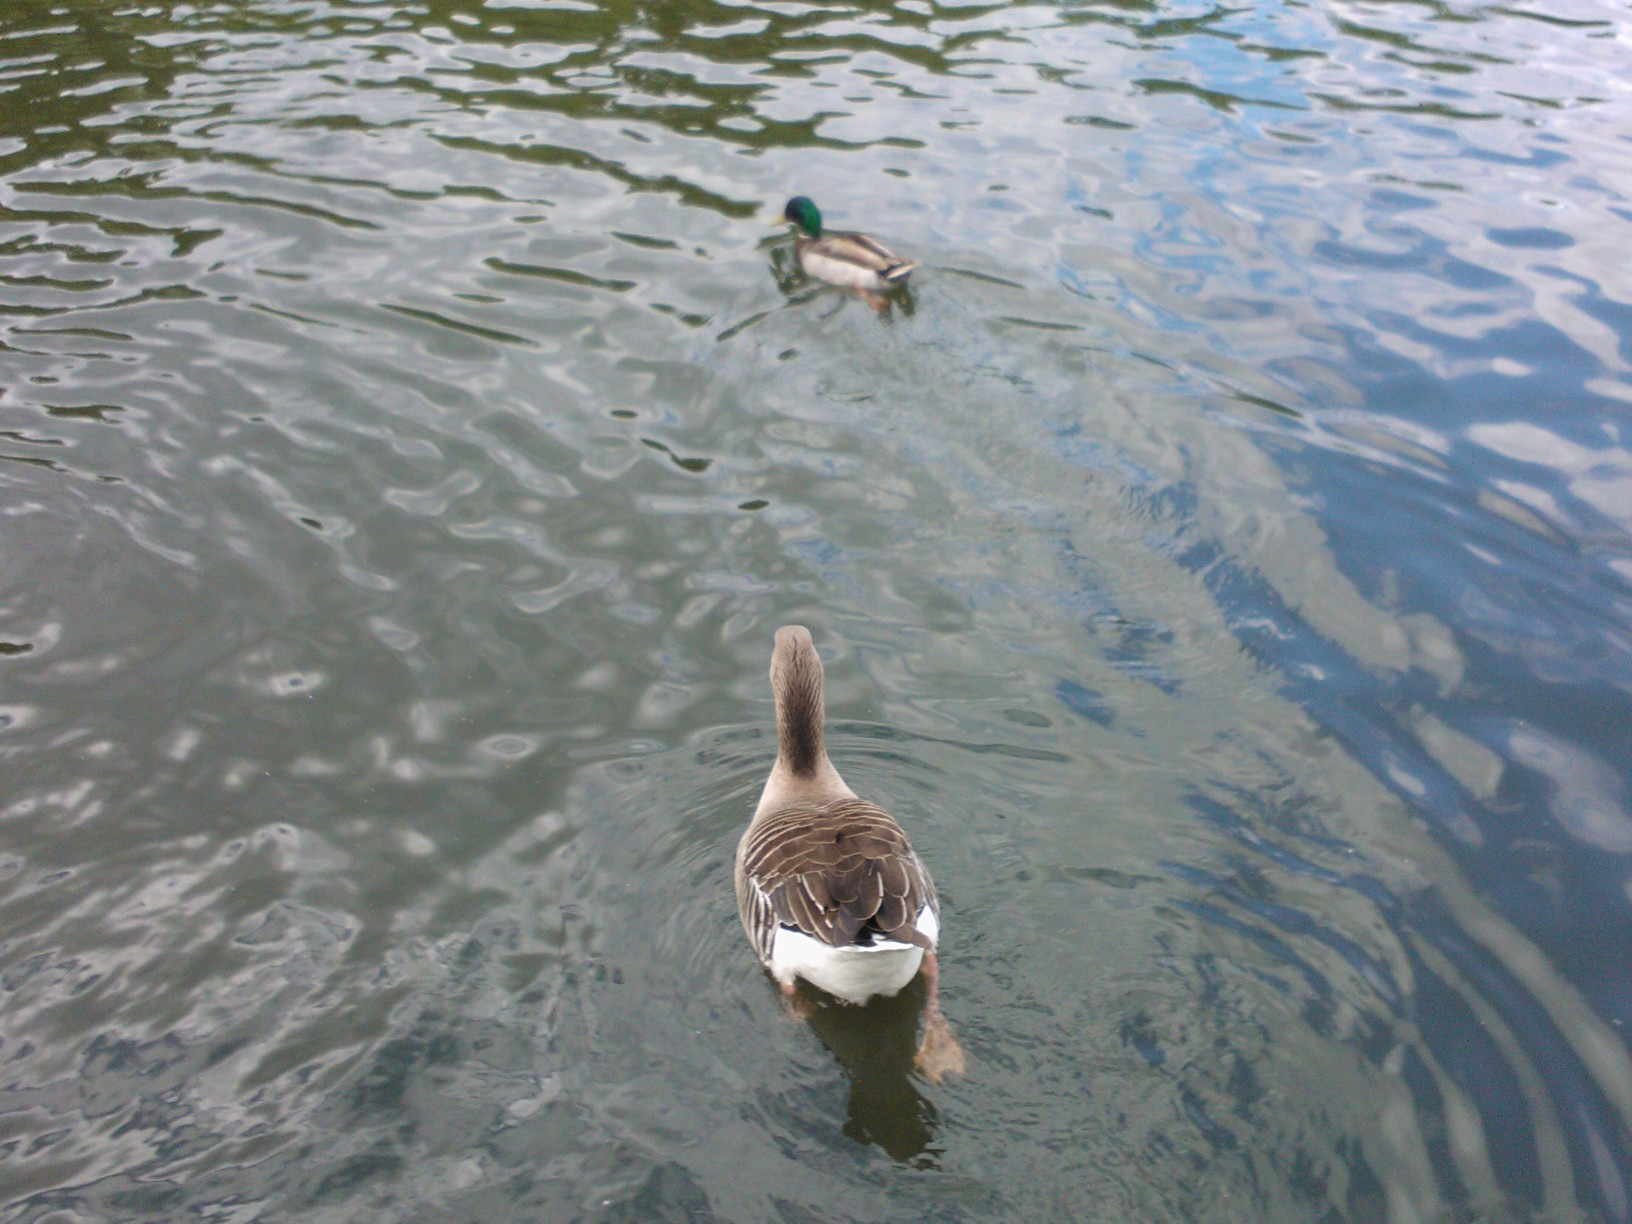 This is normally where a photo of two ducks would be. If you're not seeing these ducks, something has gone terribly wrong.